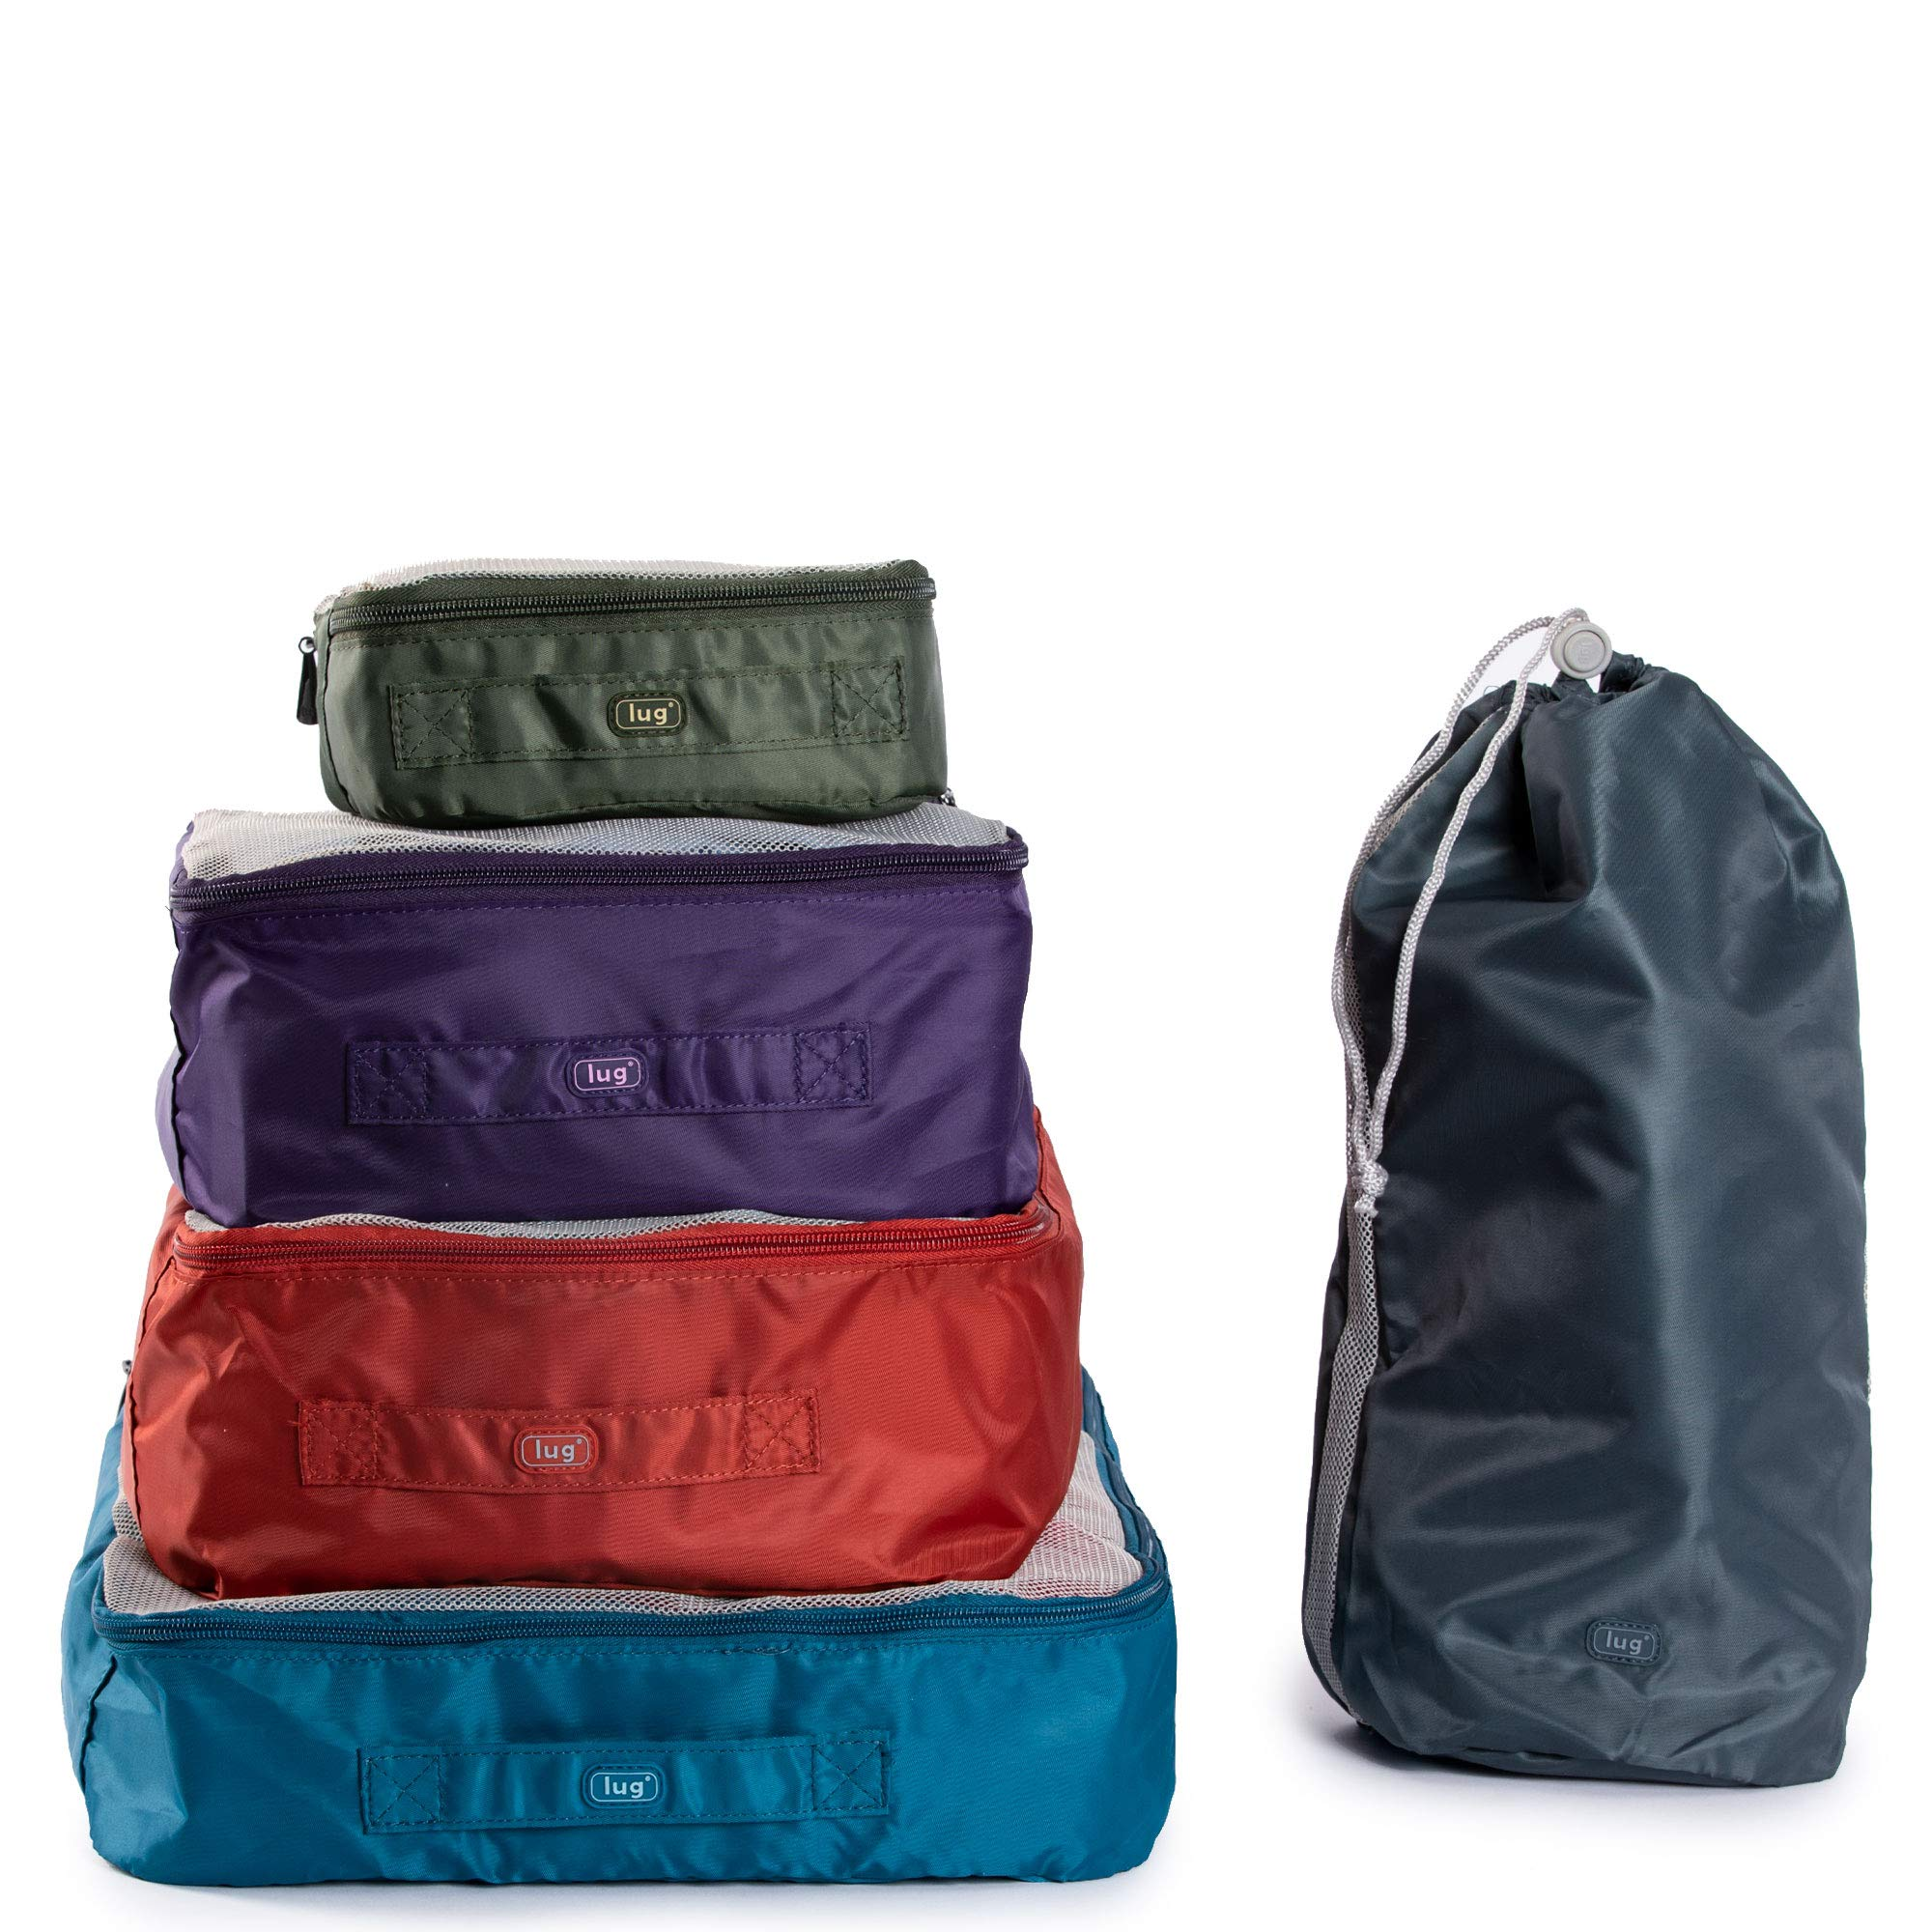 Lug Cargo 5-Piece Packing Kit, Ocean Blue/Plum Purple/Sunset Orange/Grass Green/Grey, One Size by Lug